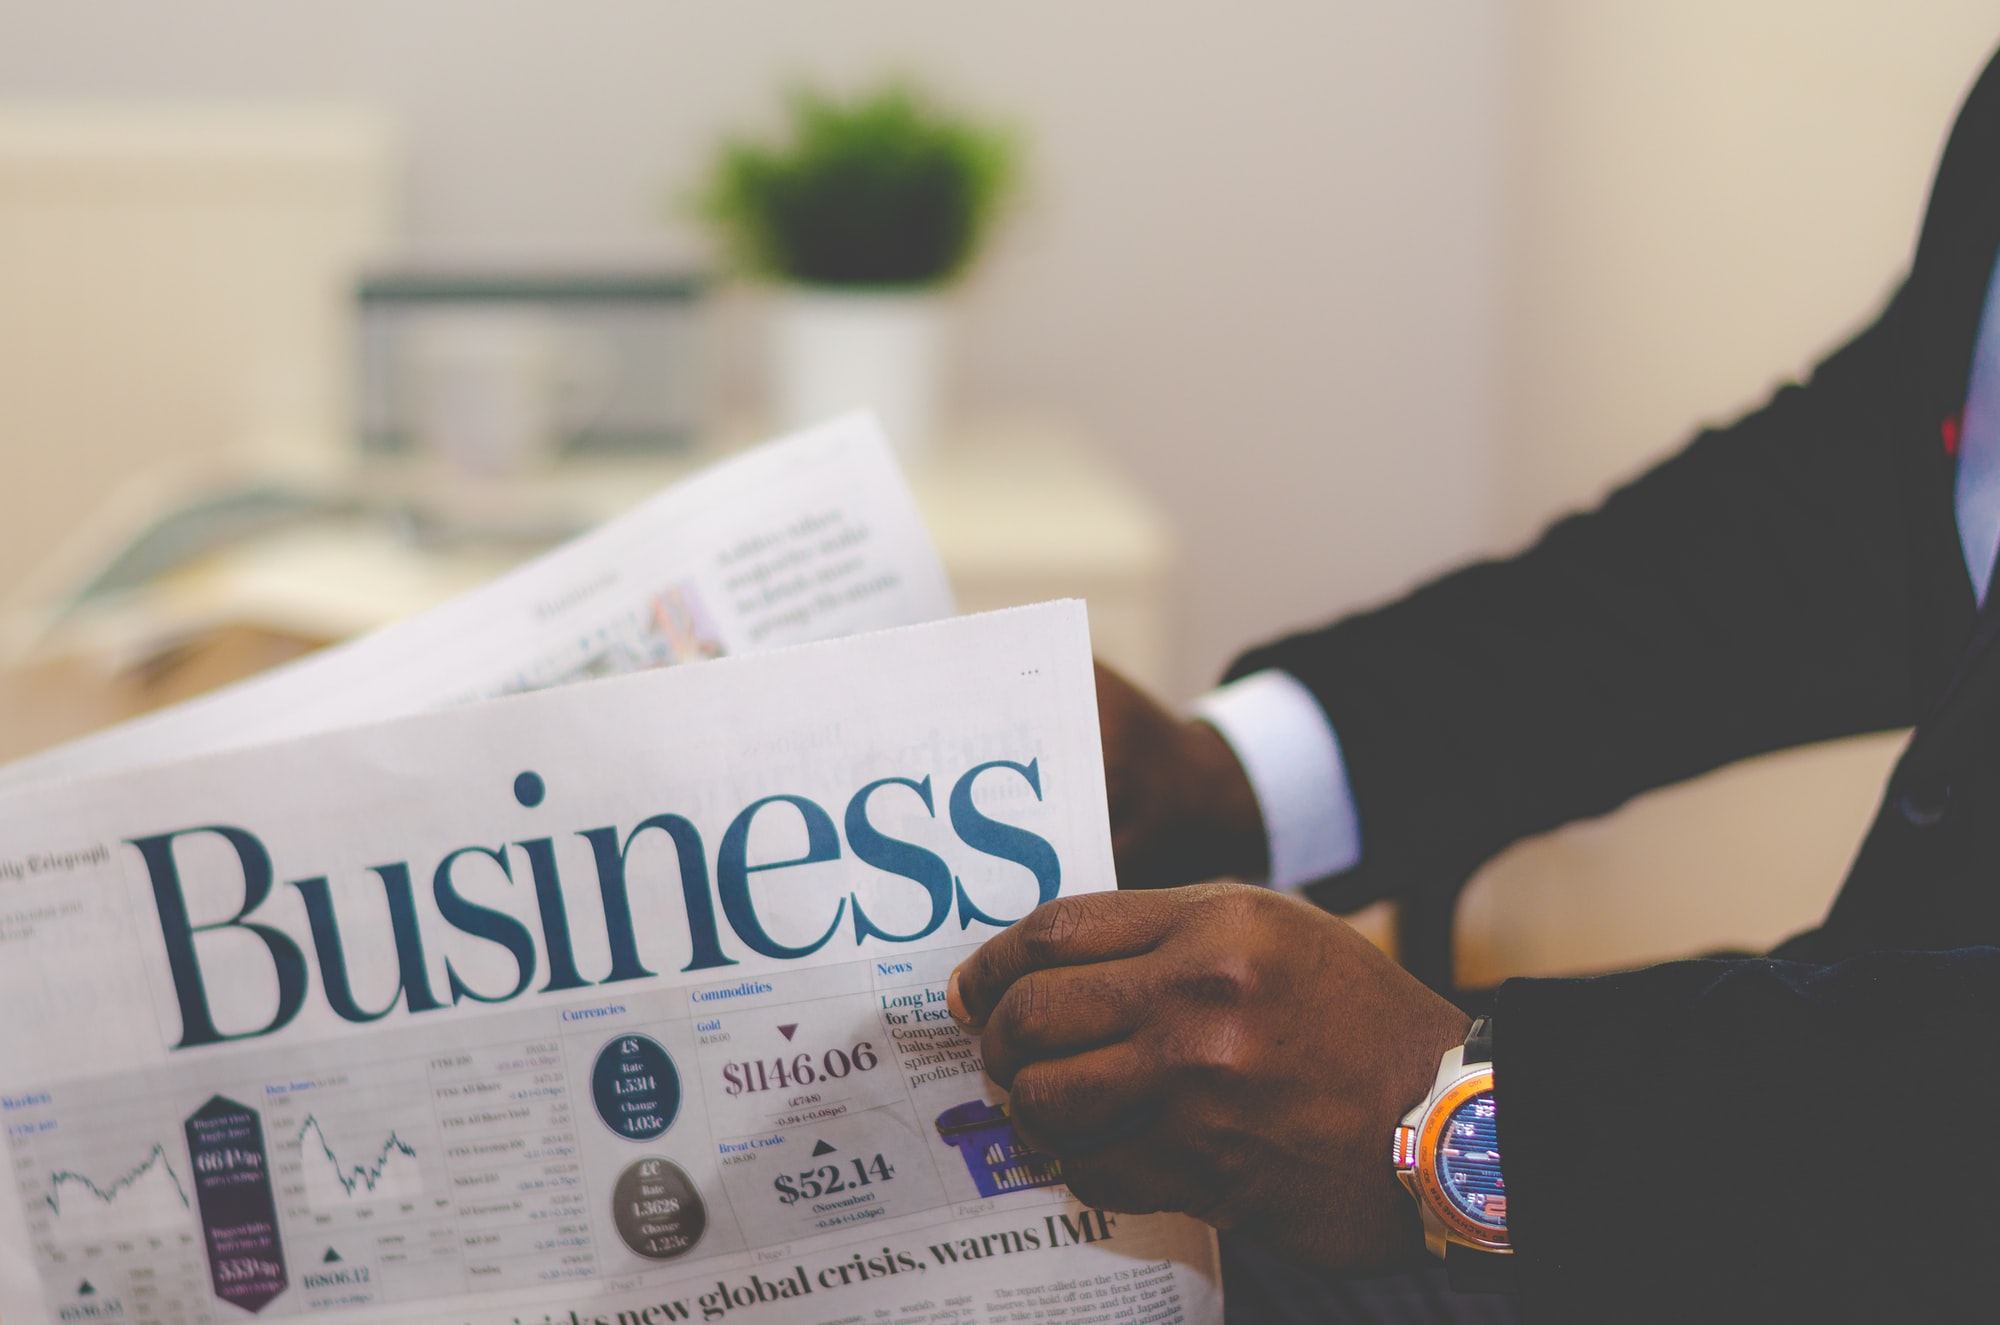 5 Things You Should Know Before Starting a Business